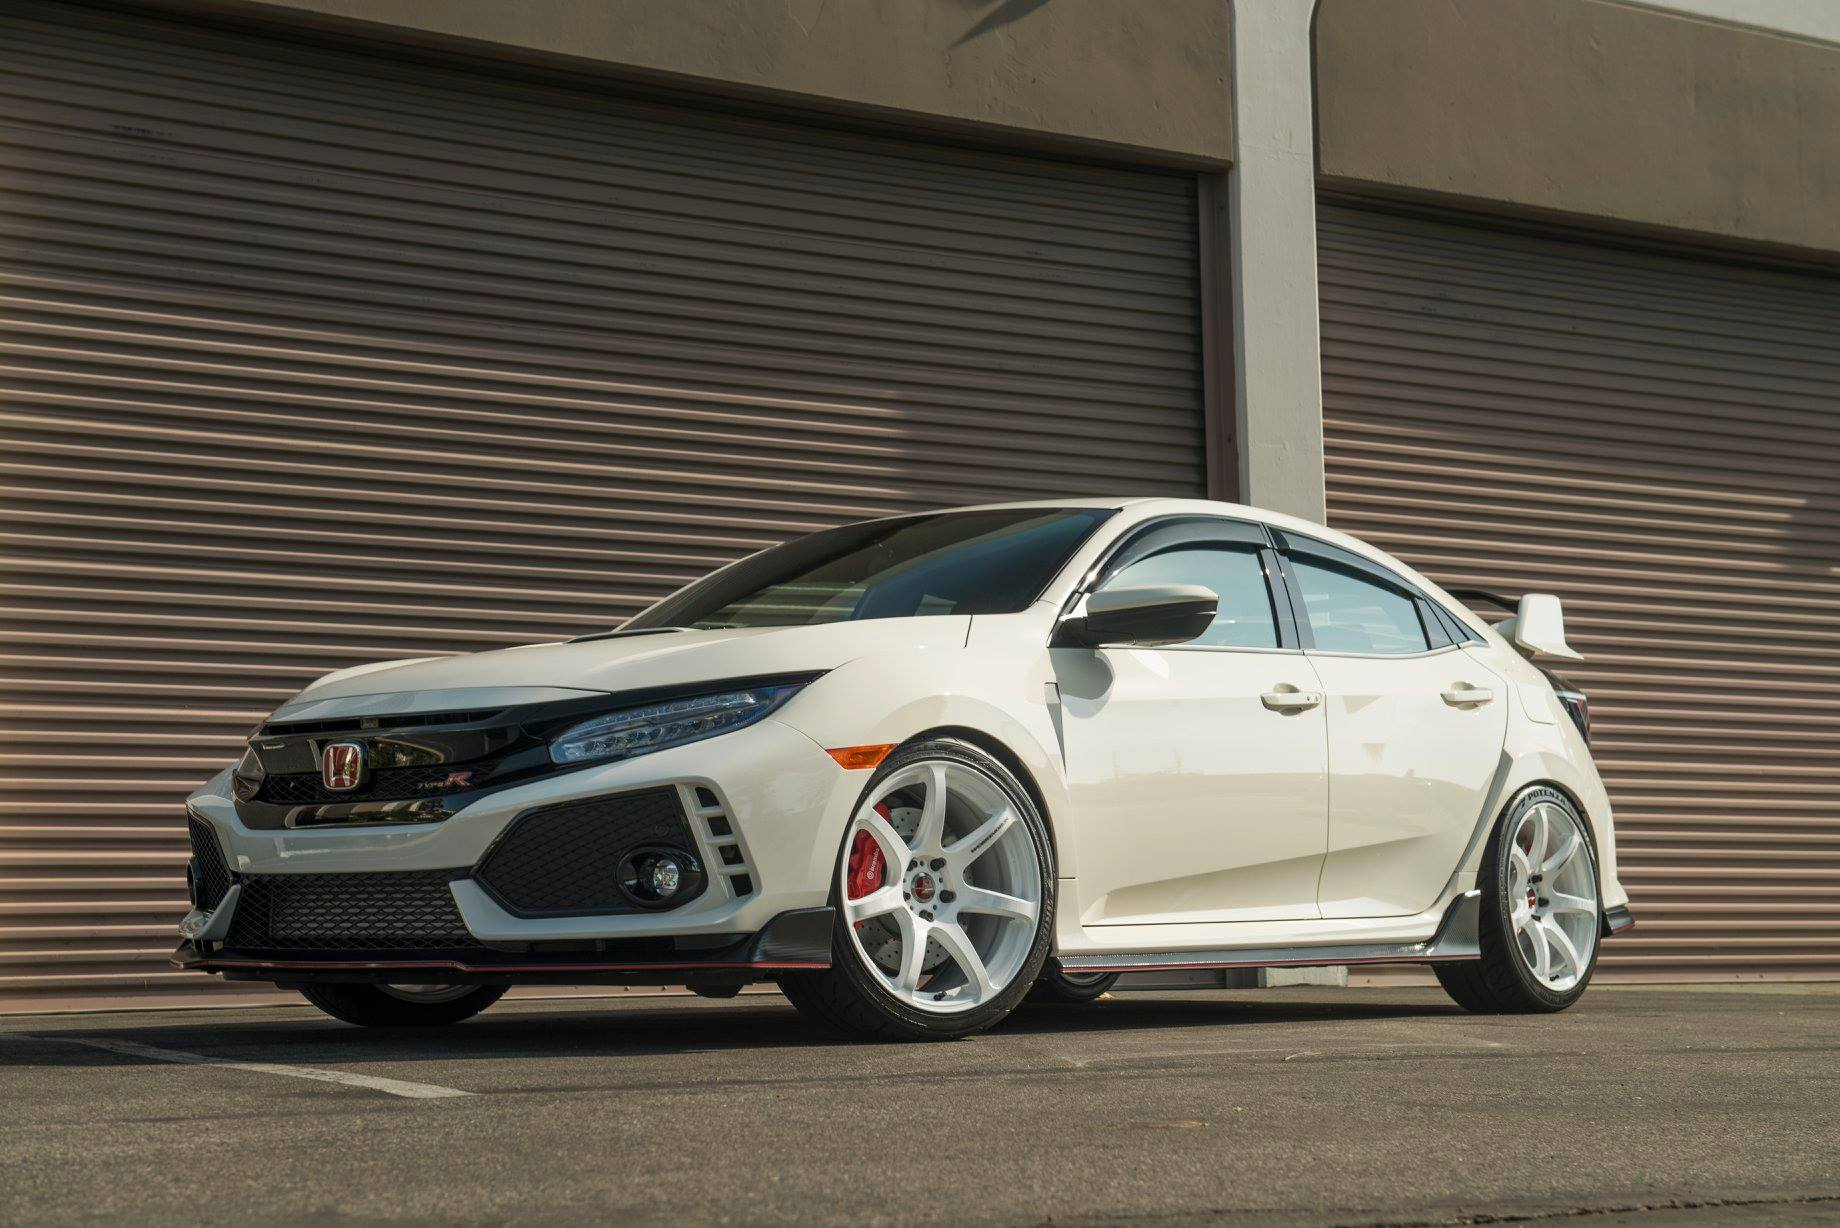 Work Emotion T7r Spec 19x9 5 38mm 5x120 Application Civic Type R Fk8 Wheel Concave Face Weight 25 Lbs Per Whe Civic Honda Civic Type R Honda Civic